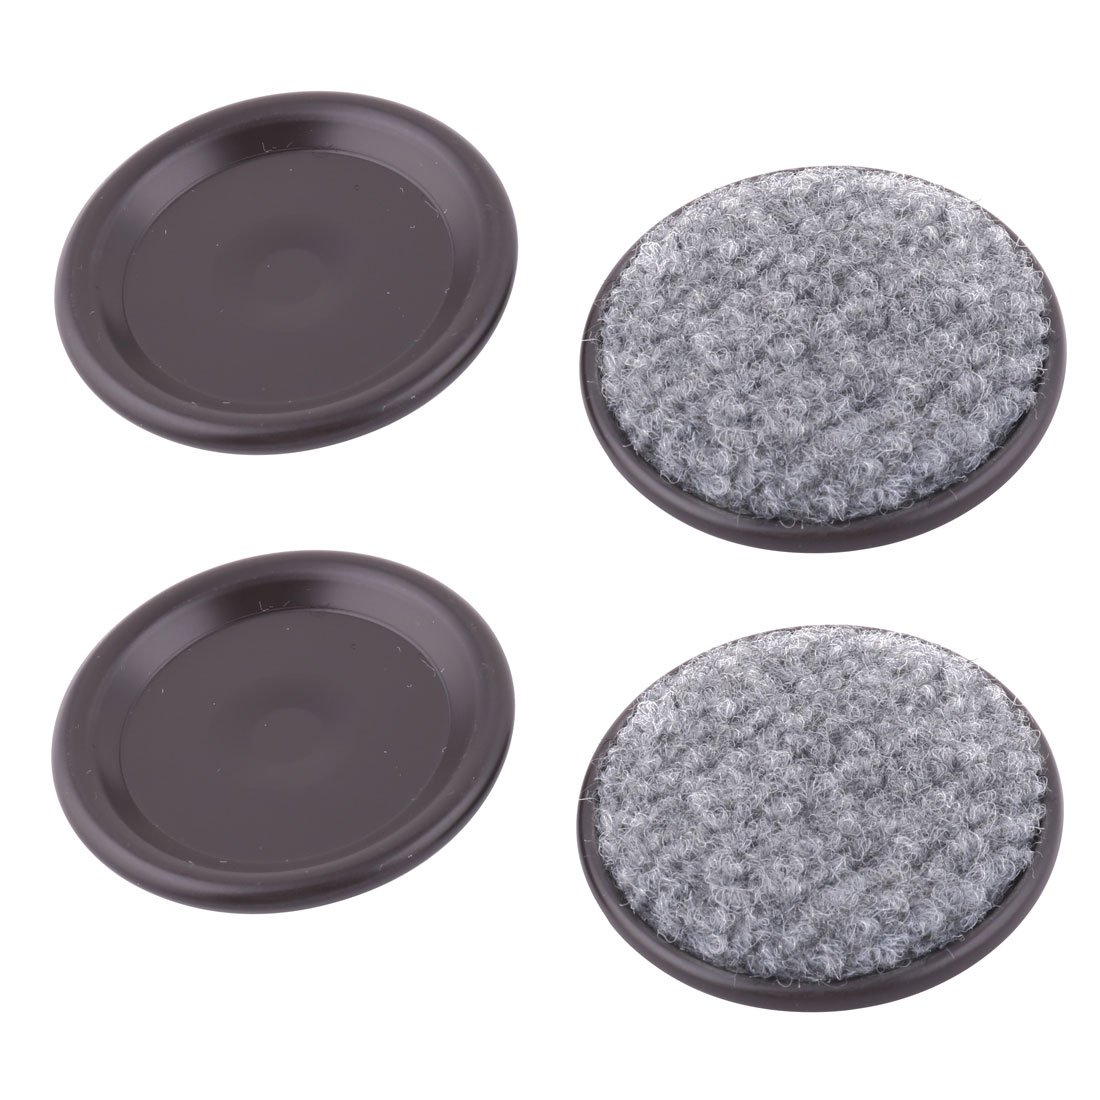 uxcell Reusable Aluminum 2.3'' Round Furniture Slider Pad for Hard Floor Surfaces, Sofa Legs Chair Table Foot Anti Noise with Carpeted Bottoms, 4 Pieces